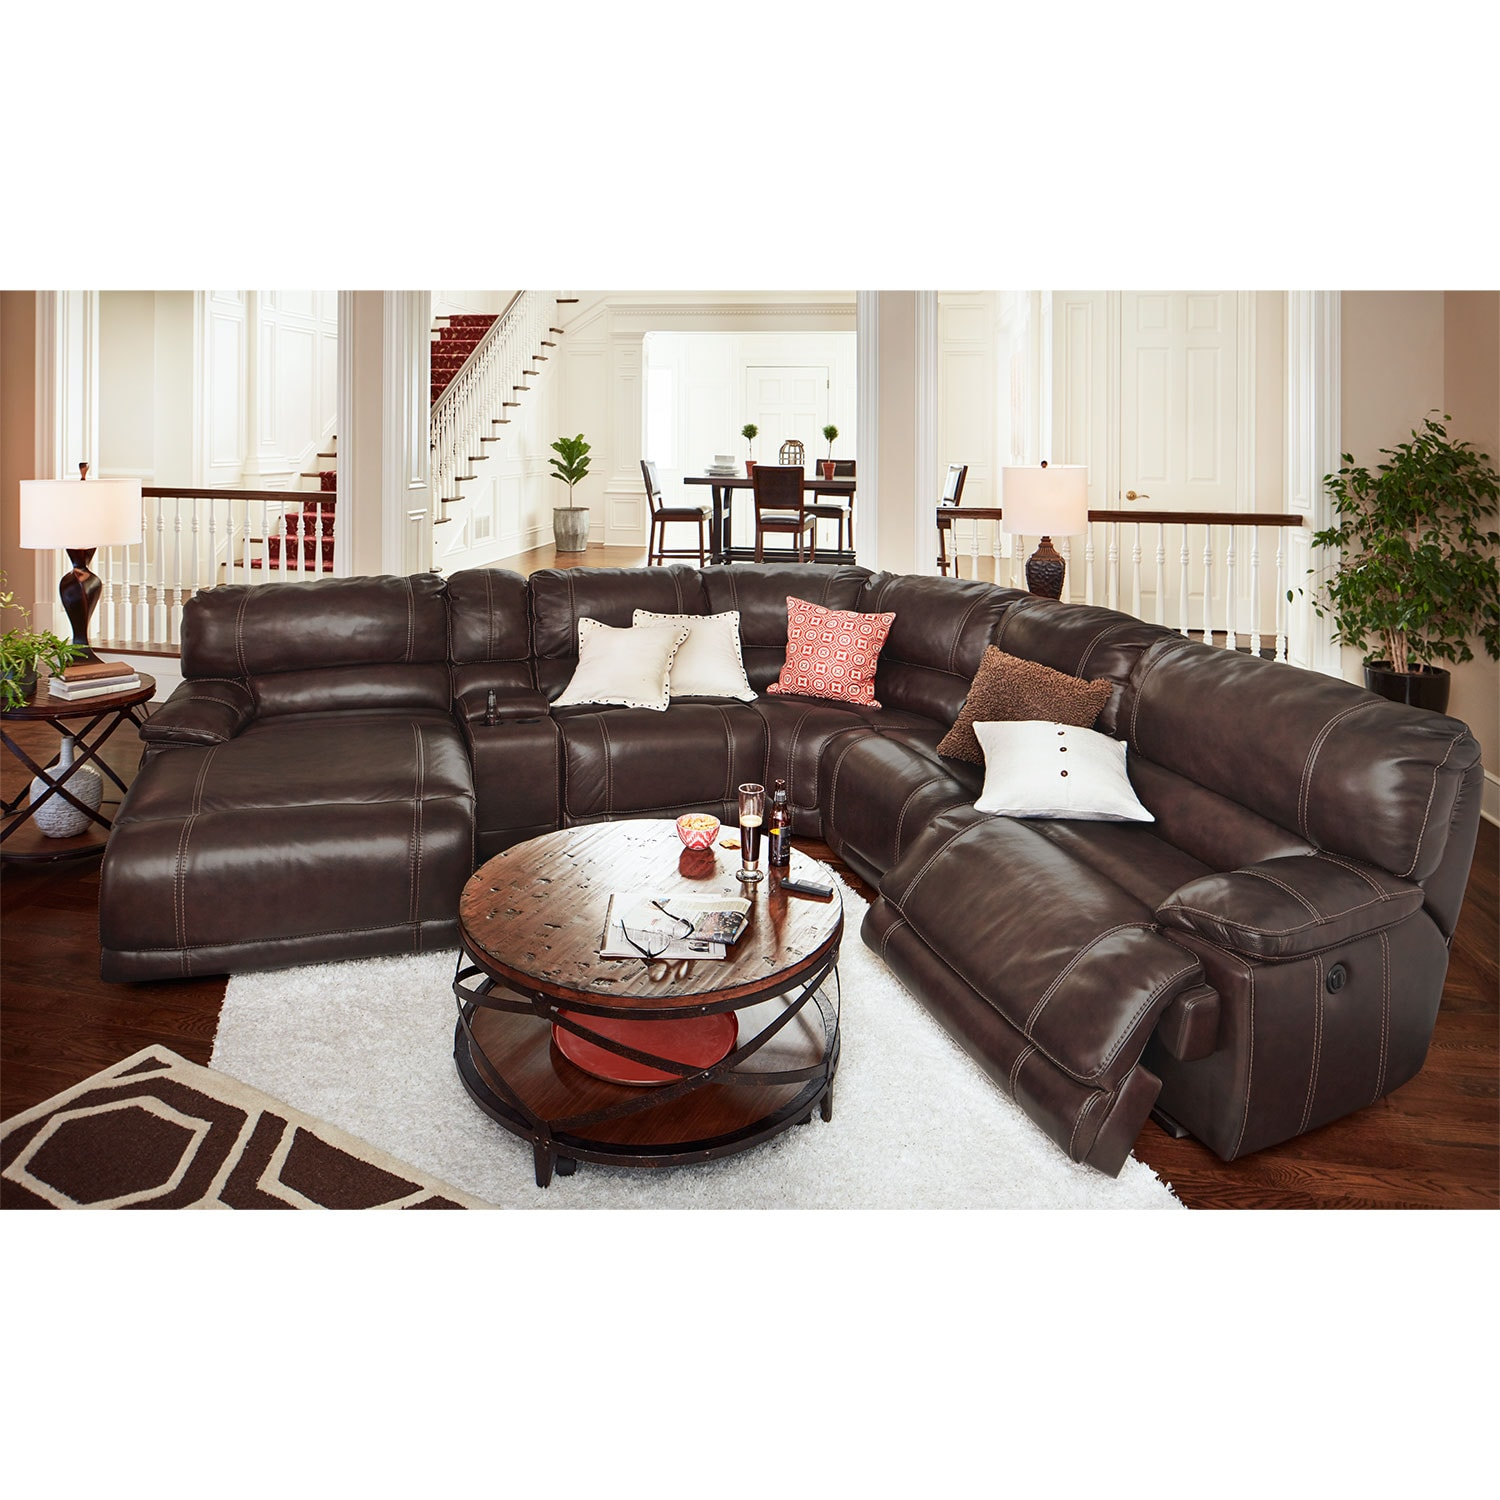 Recliner Sectional Coaster Grey Leather Reclining Sectional